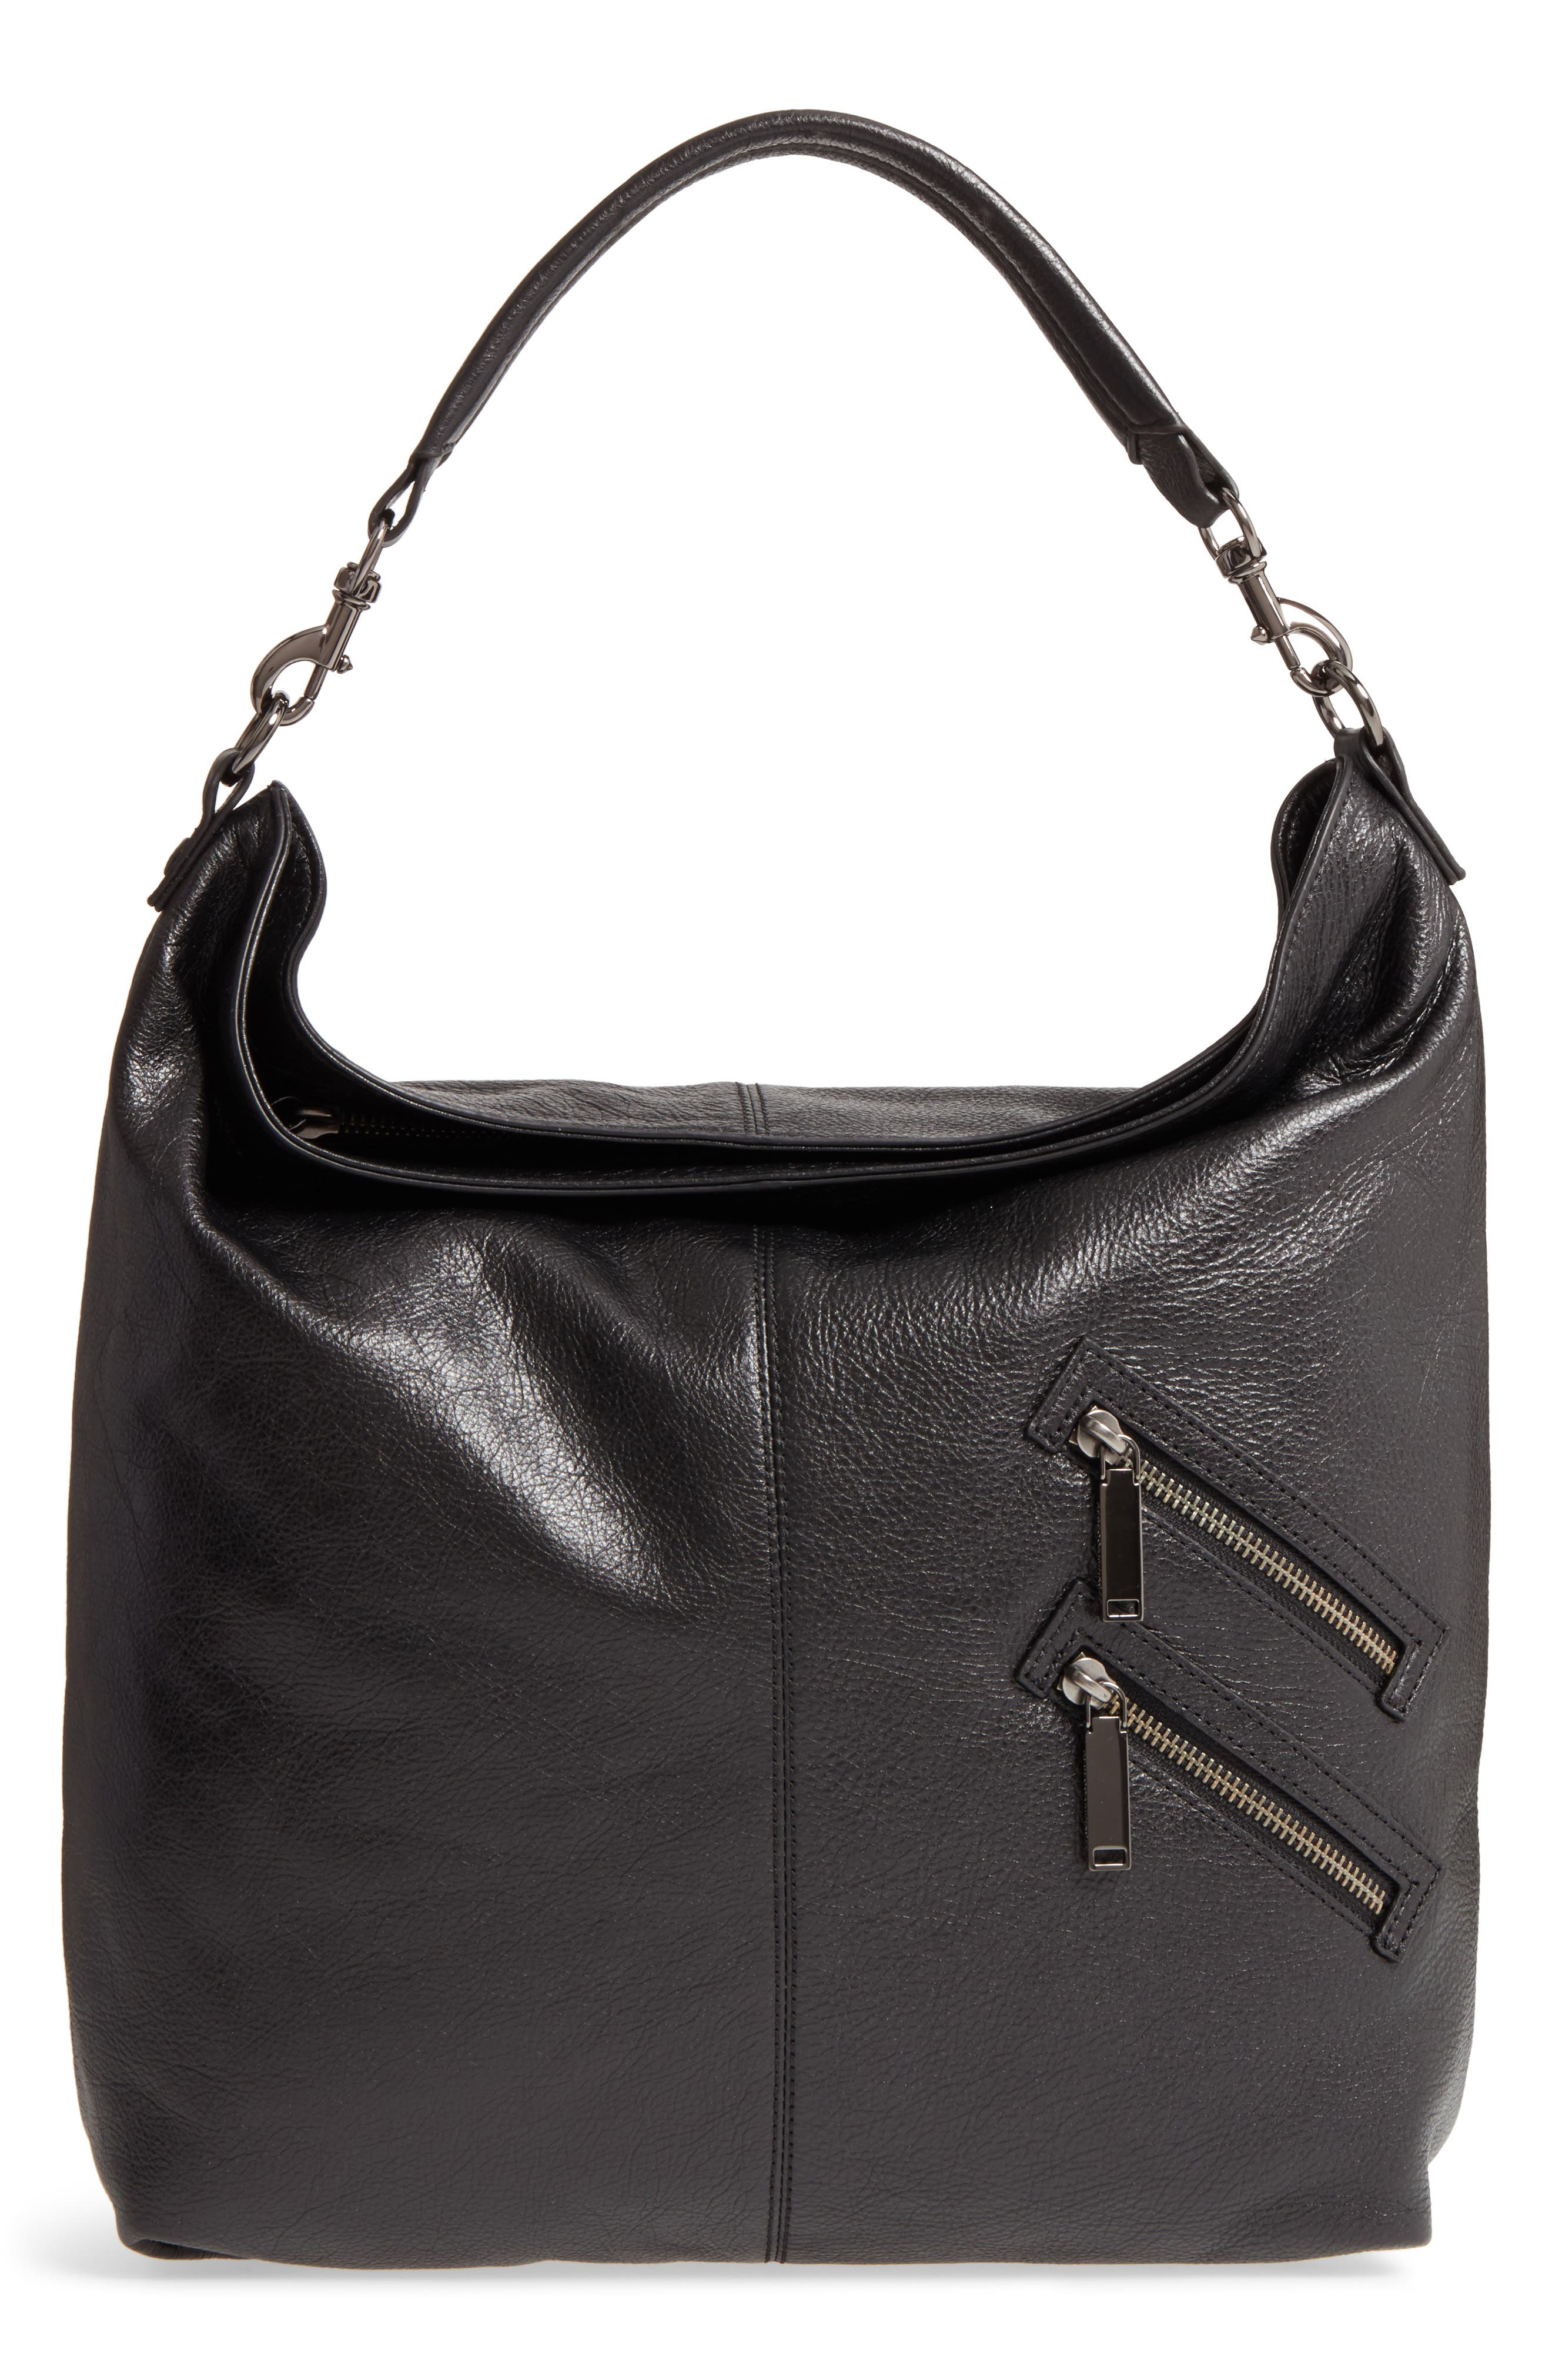 Alternate Image 1 Selected - Rebecca Minkoff Large Jamie Convertible Leather Hobo